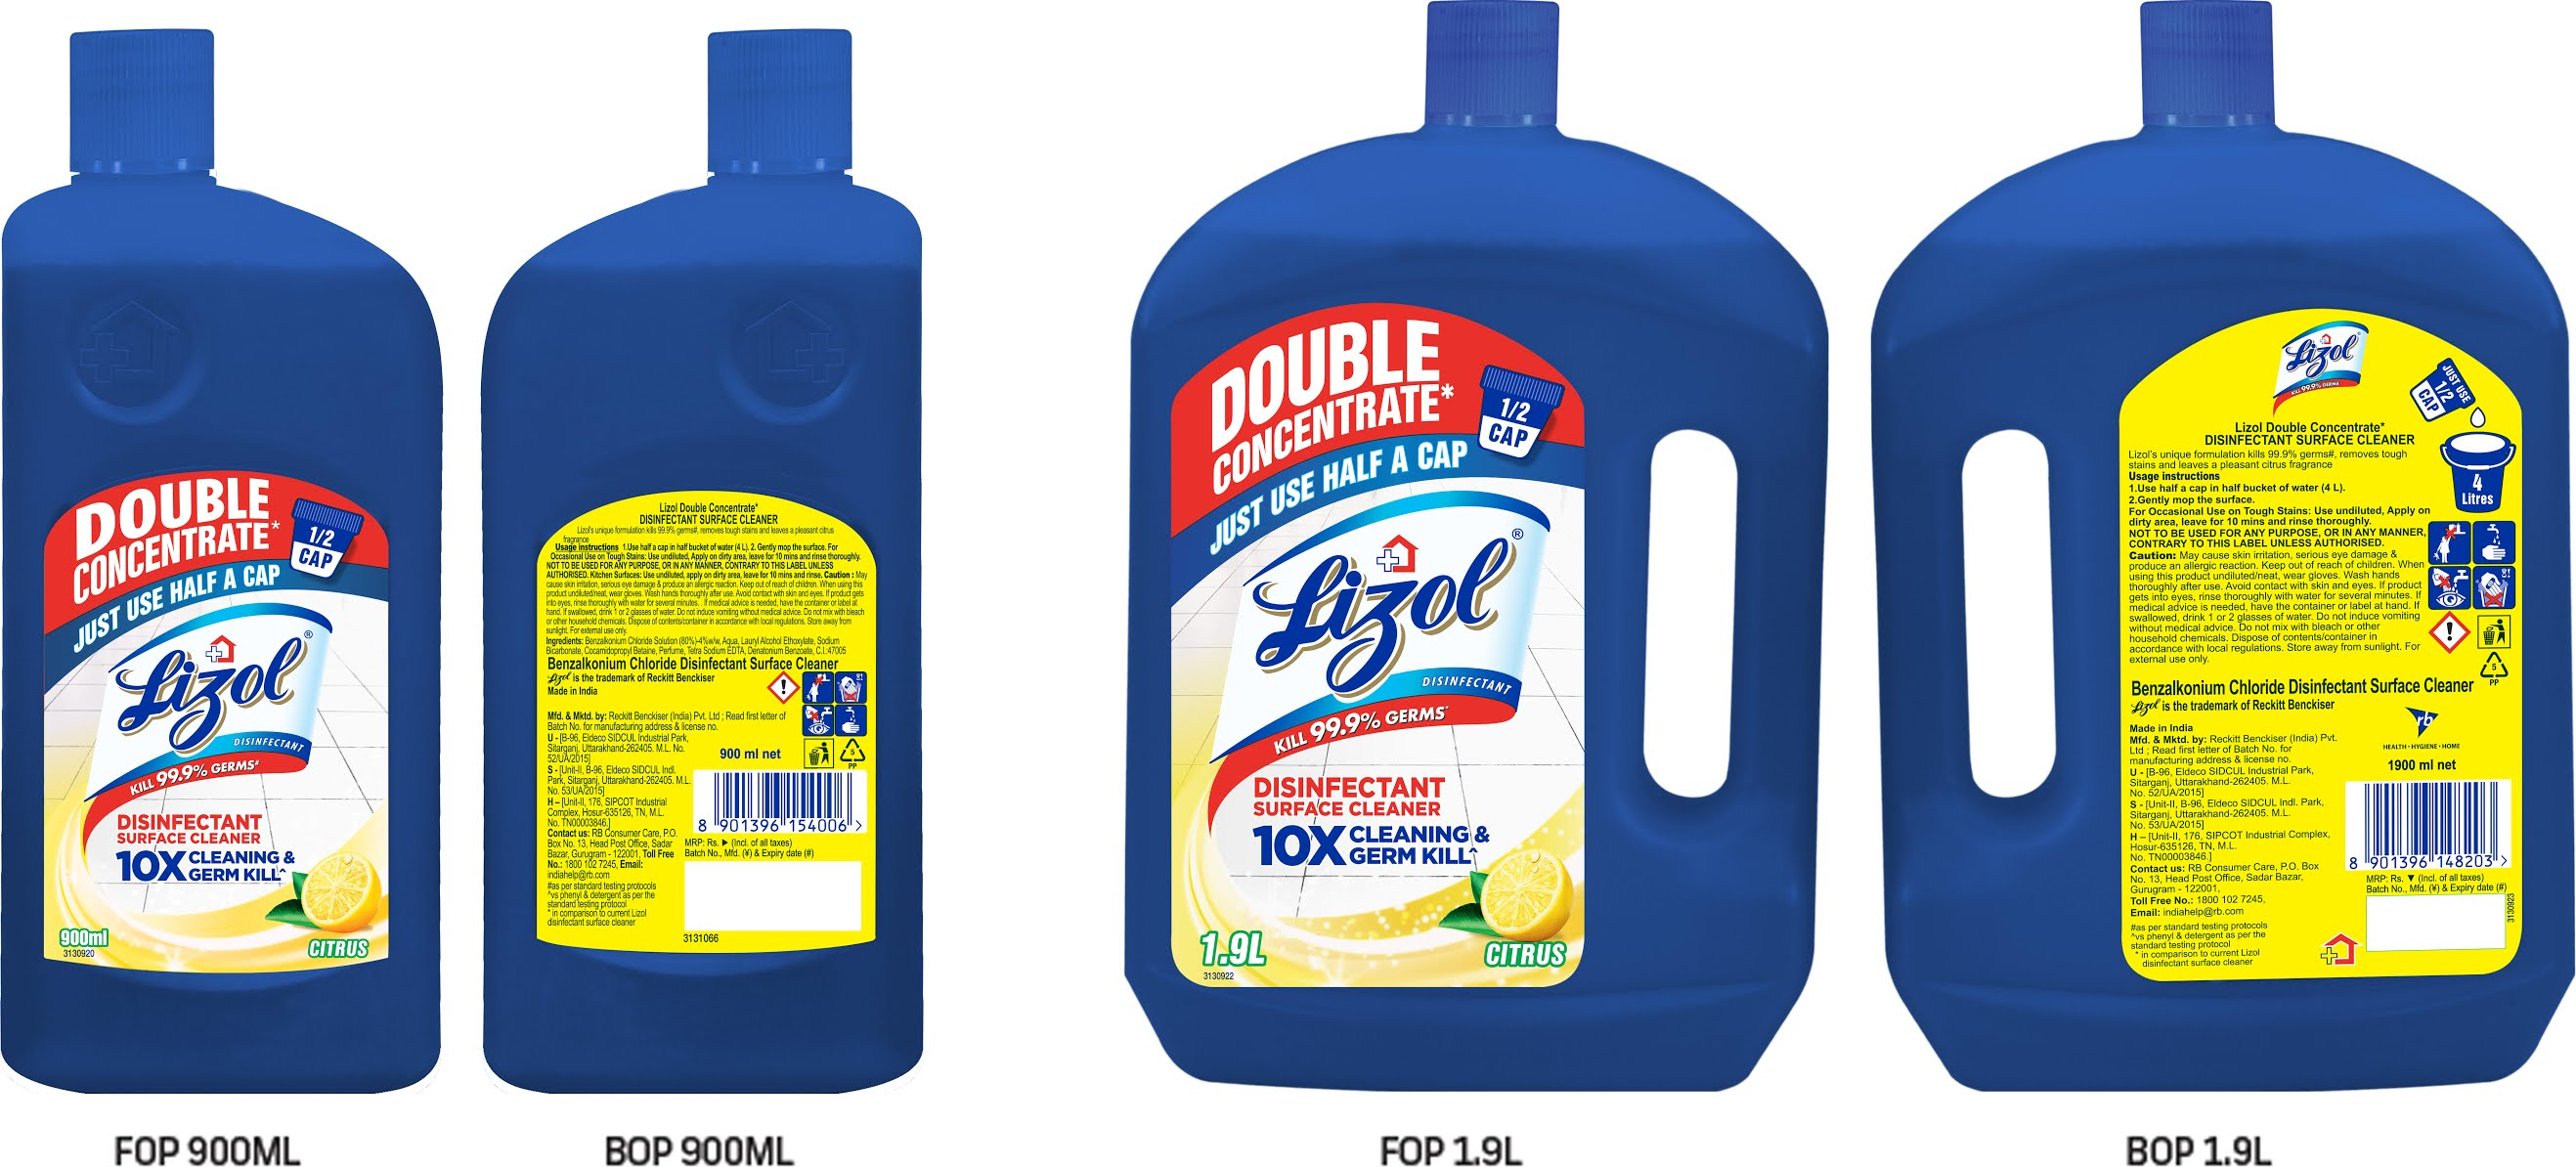 lizol introduces its first disinfectant